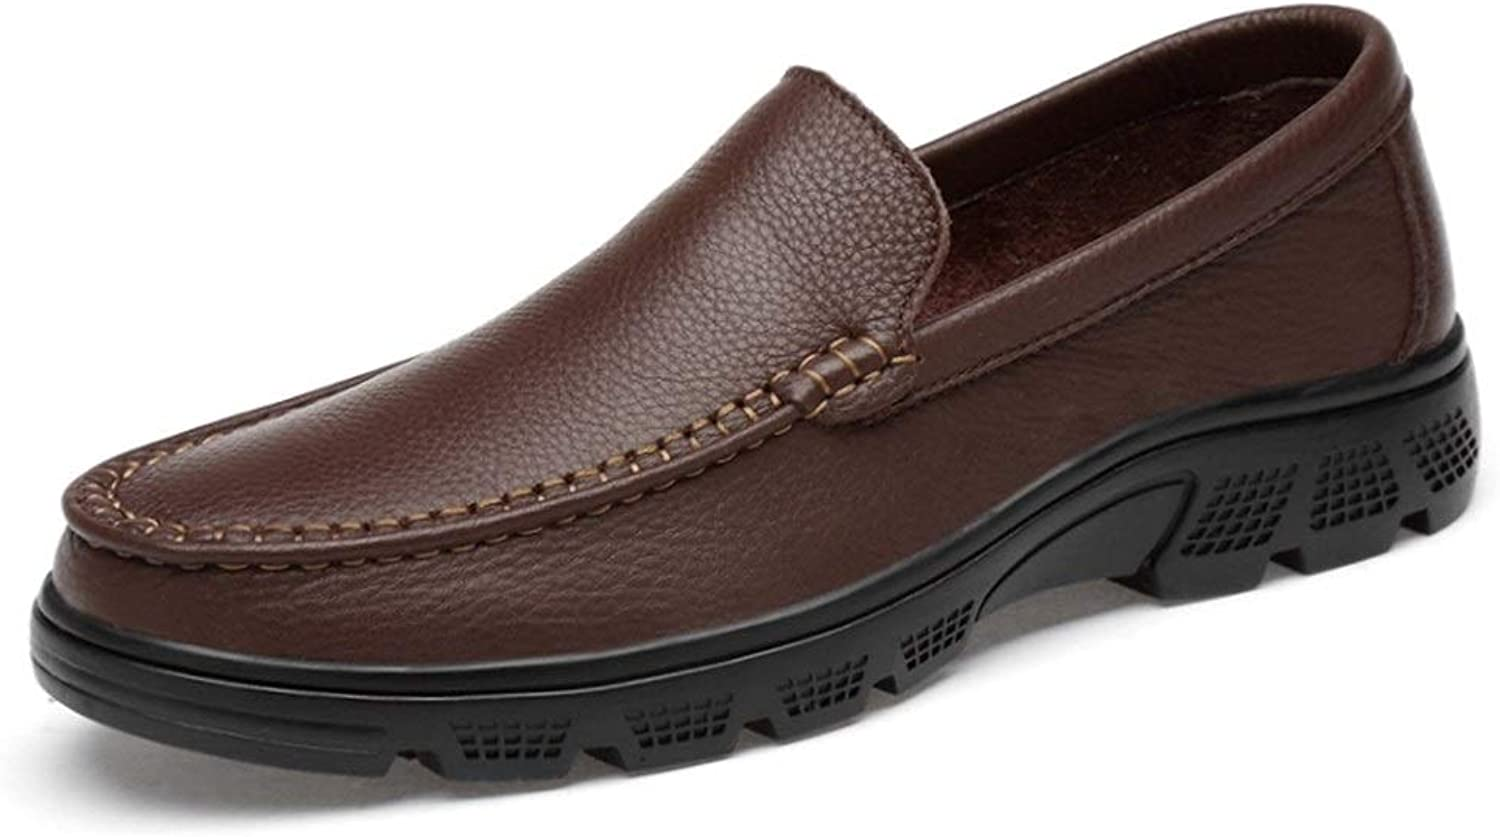 Mens loafers Flats Black Brown Slip-on Loafers shoes For Men Genuine Leather Comfortable Breathable Classic Business Casual Dress Wedding Fashion Loafers Anti-slip Flat Round Toe Slip-on